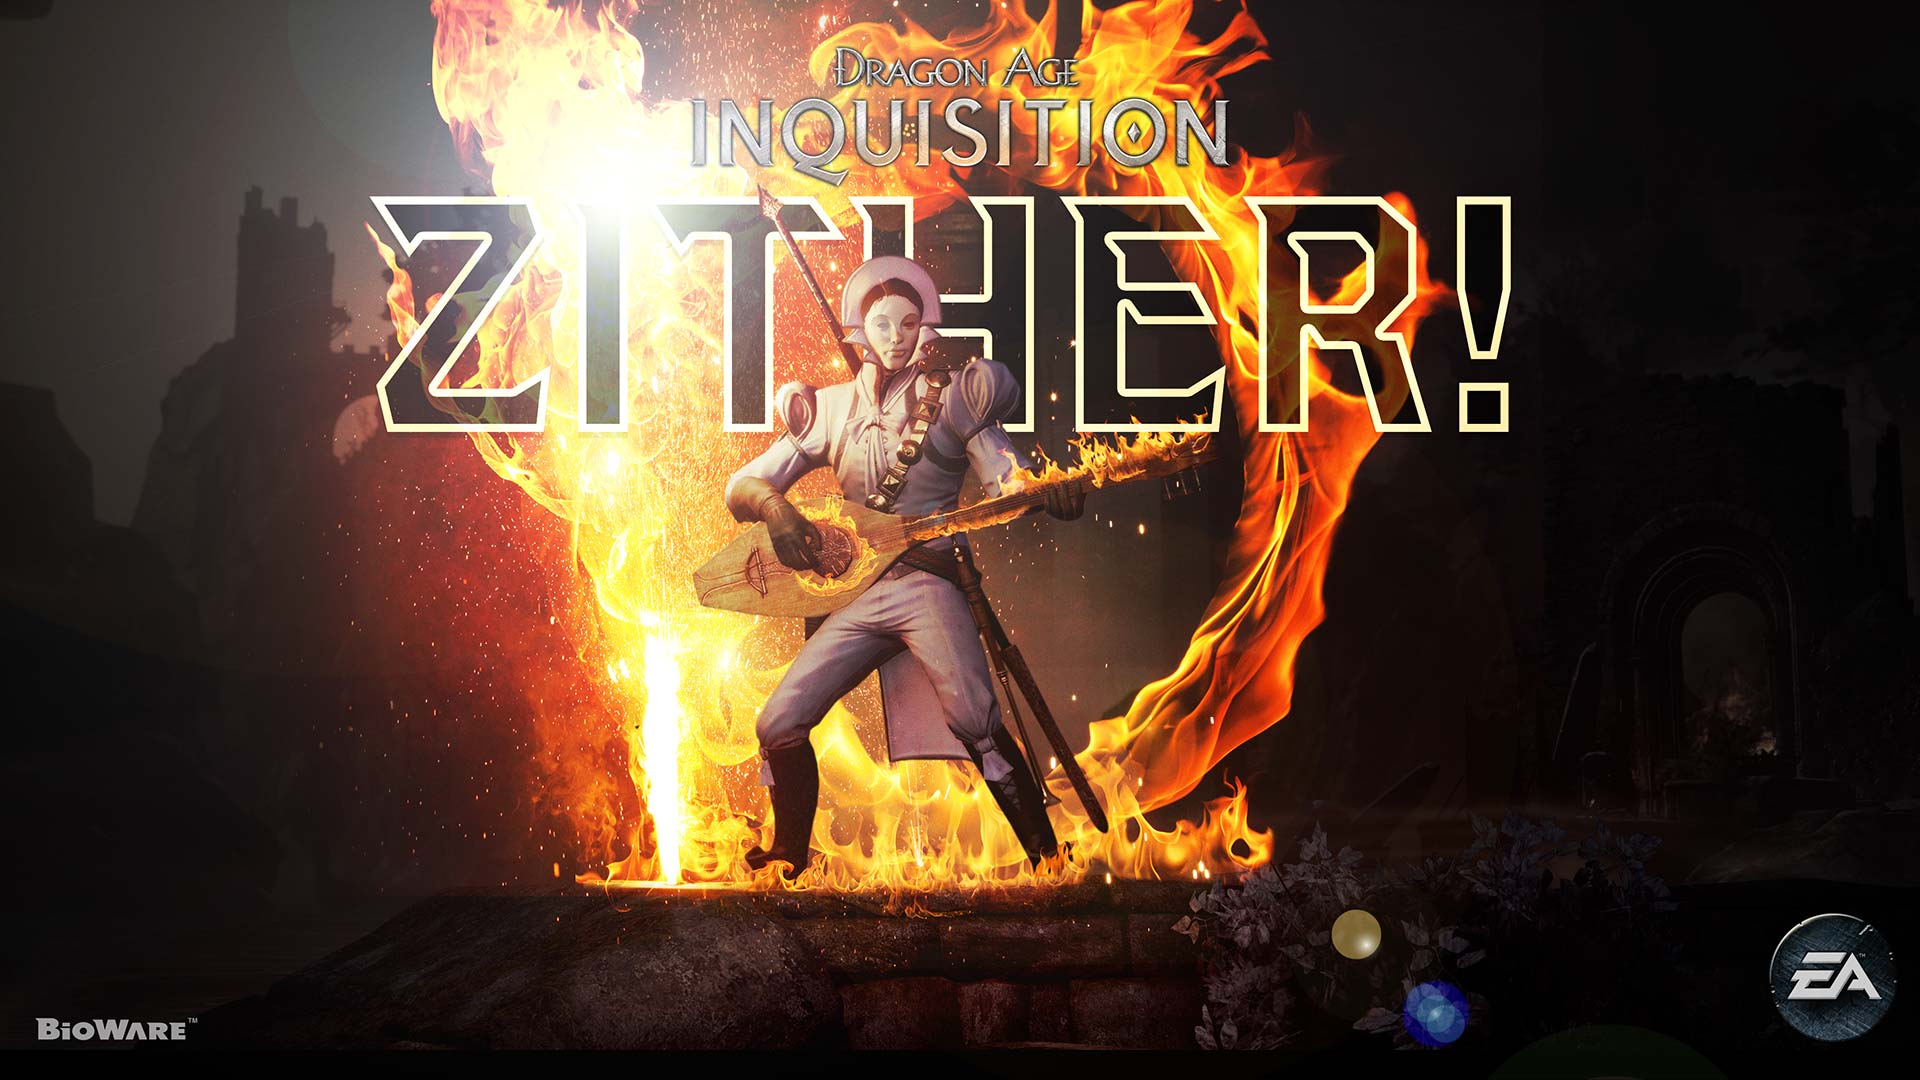 Dragon Age Inquisition Zither Gaming Cypher